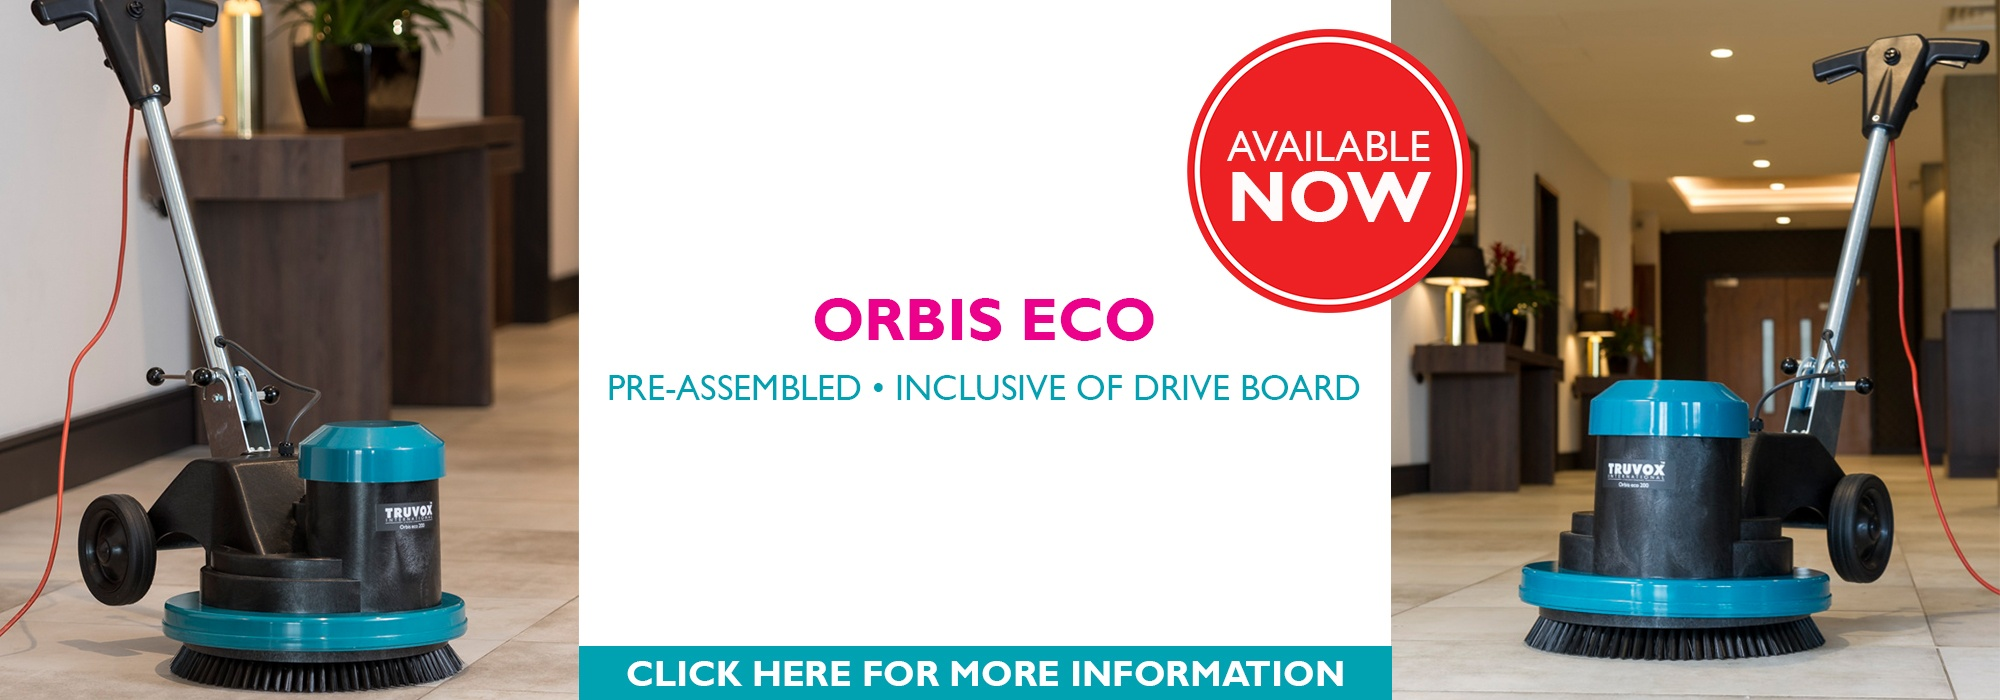 Orbis eco Commercial Rotary Machine